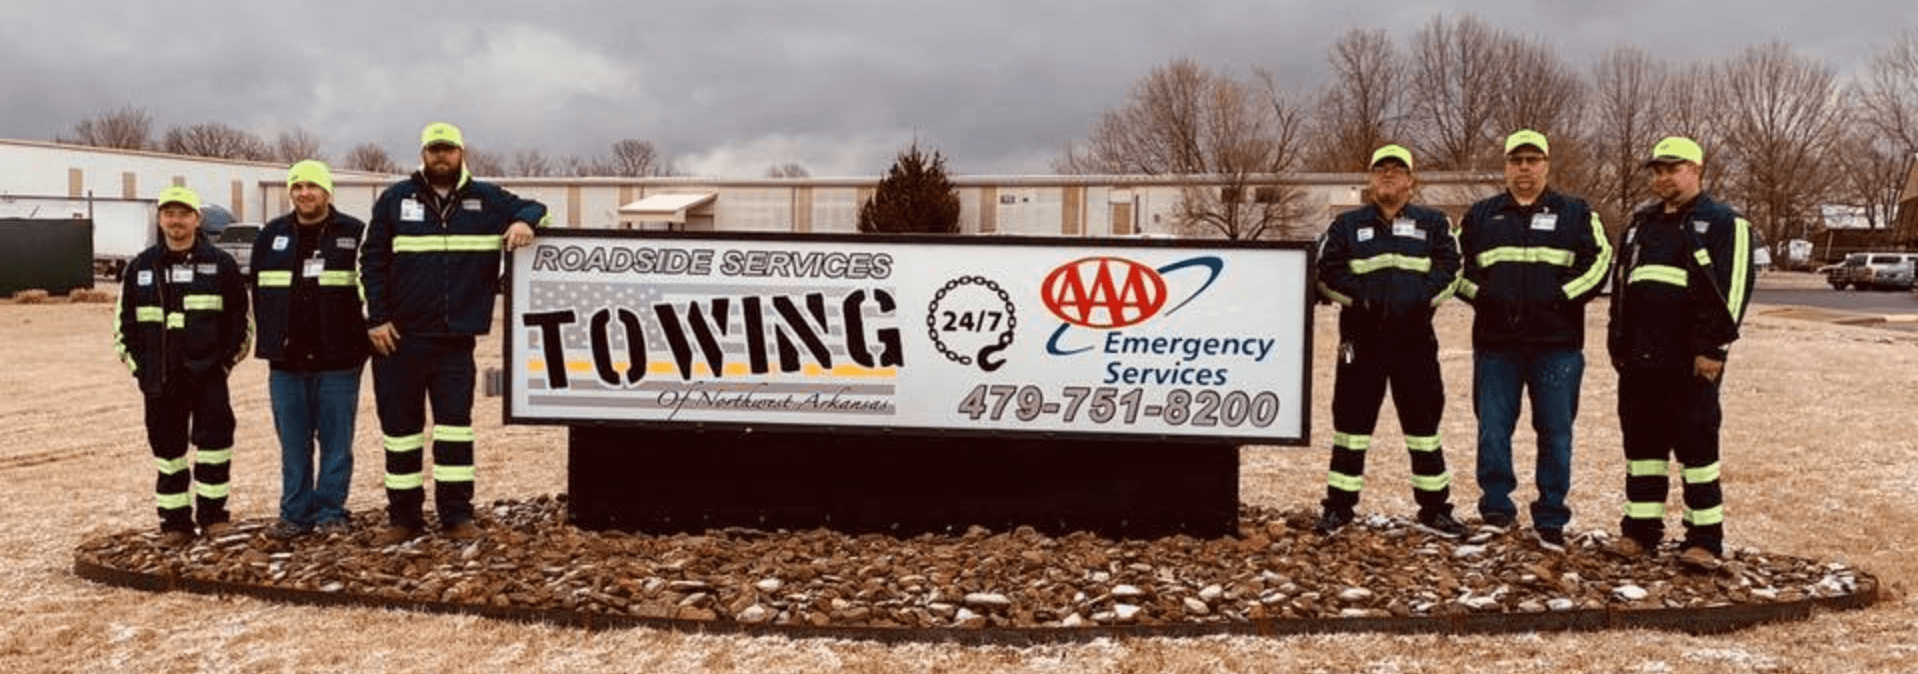 Roadside services towing of NWA _2